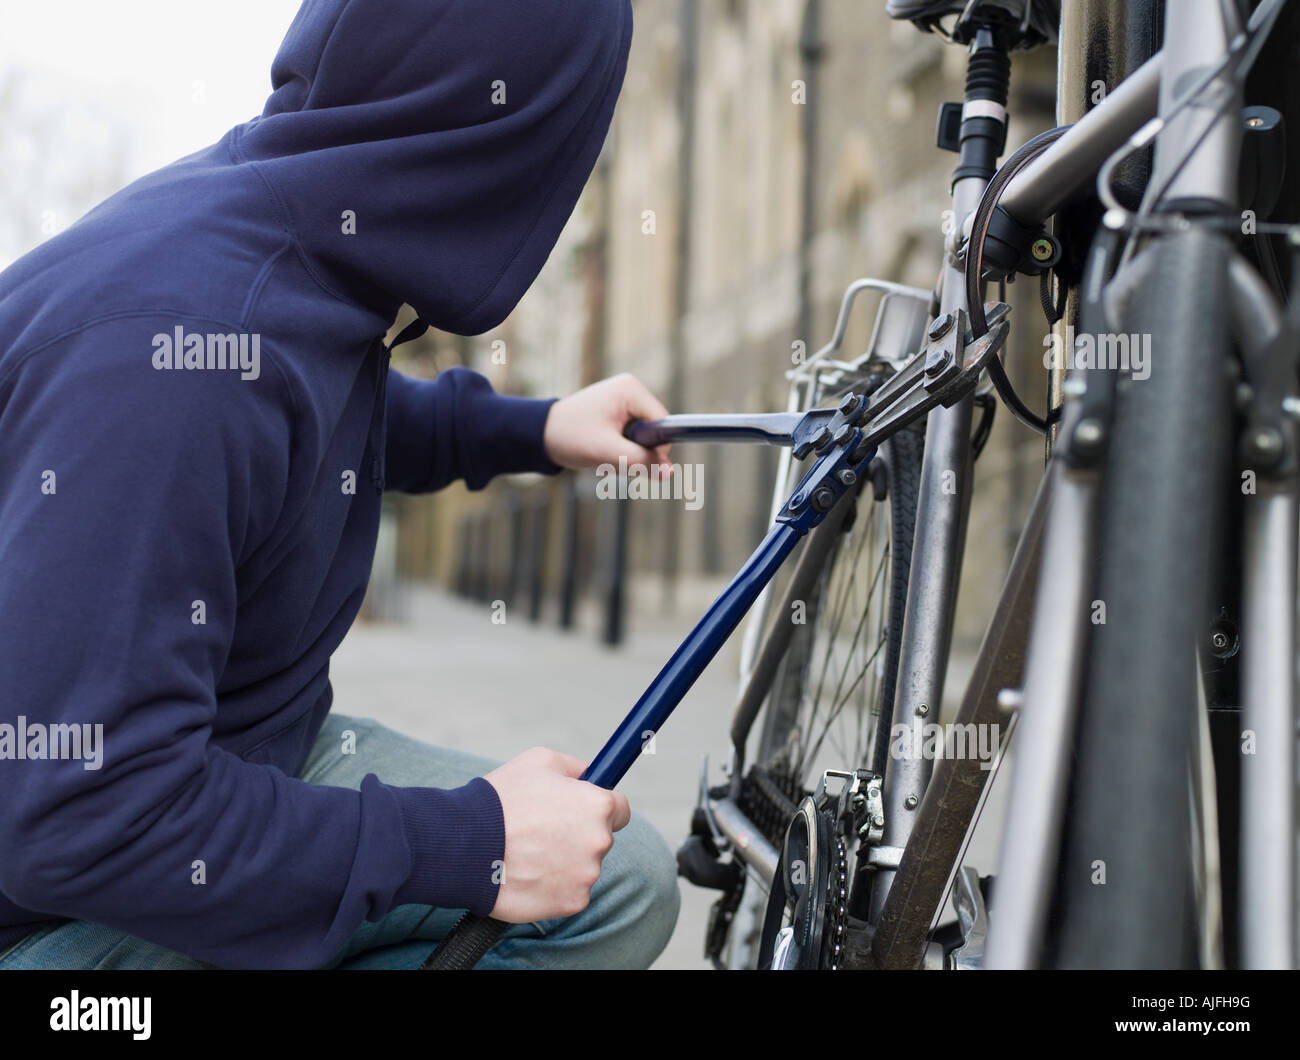 A thief stealing a bike - Stock Image